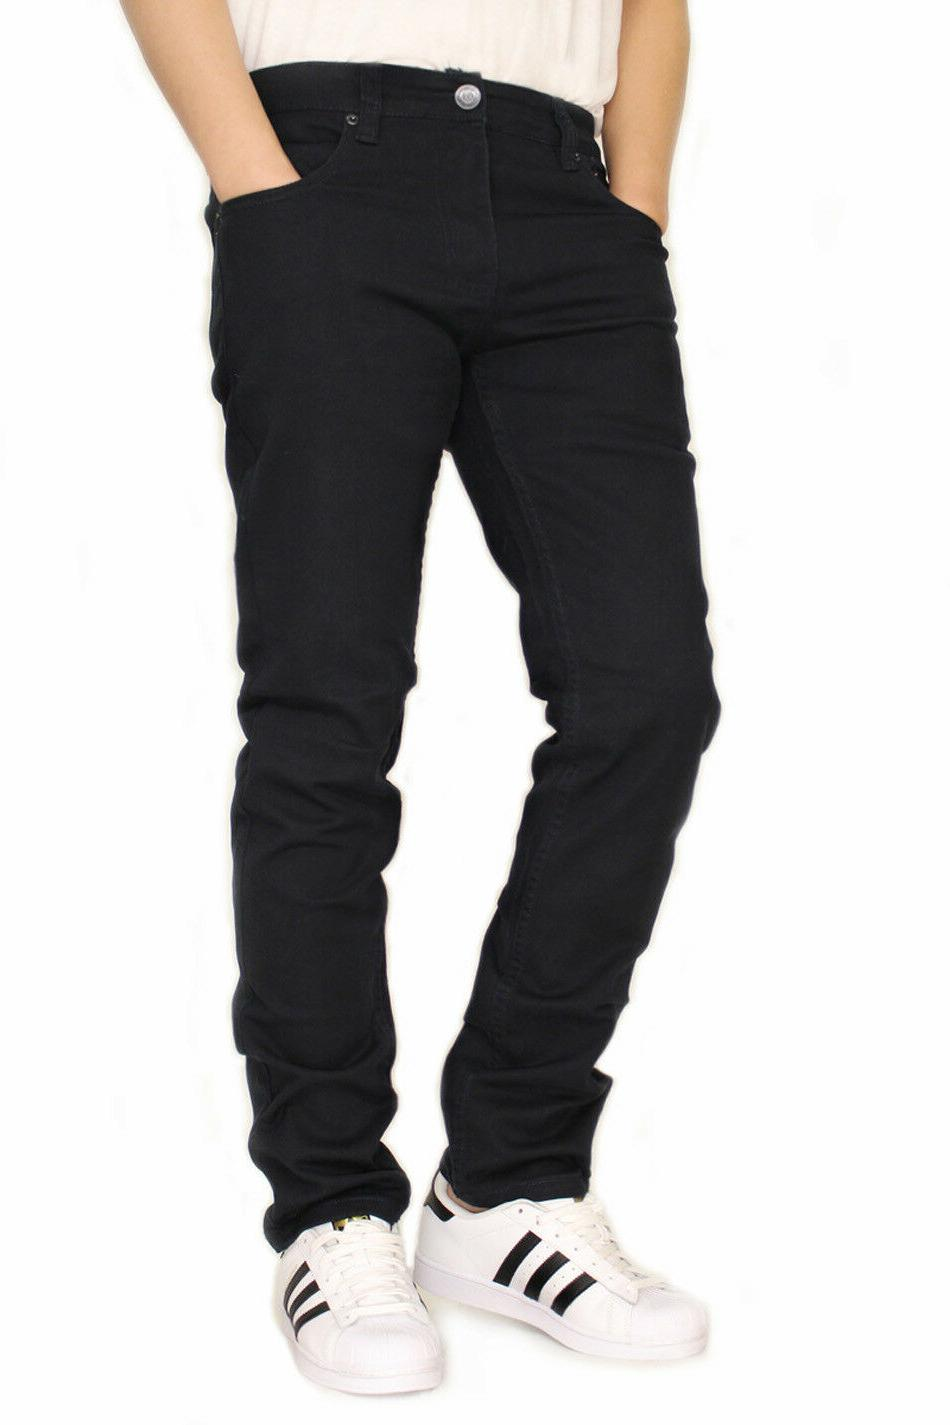 MEN'S TWILL STRETCH JEANS VICTORIOUS WAIST